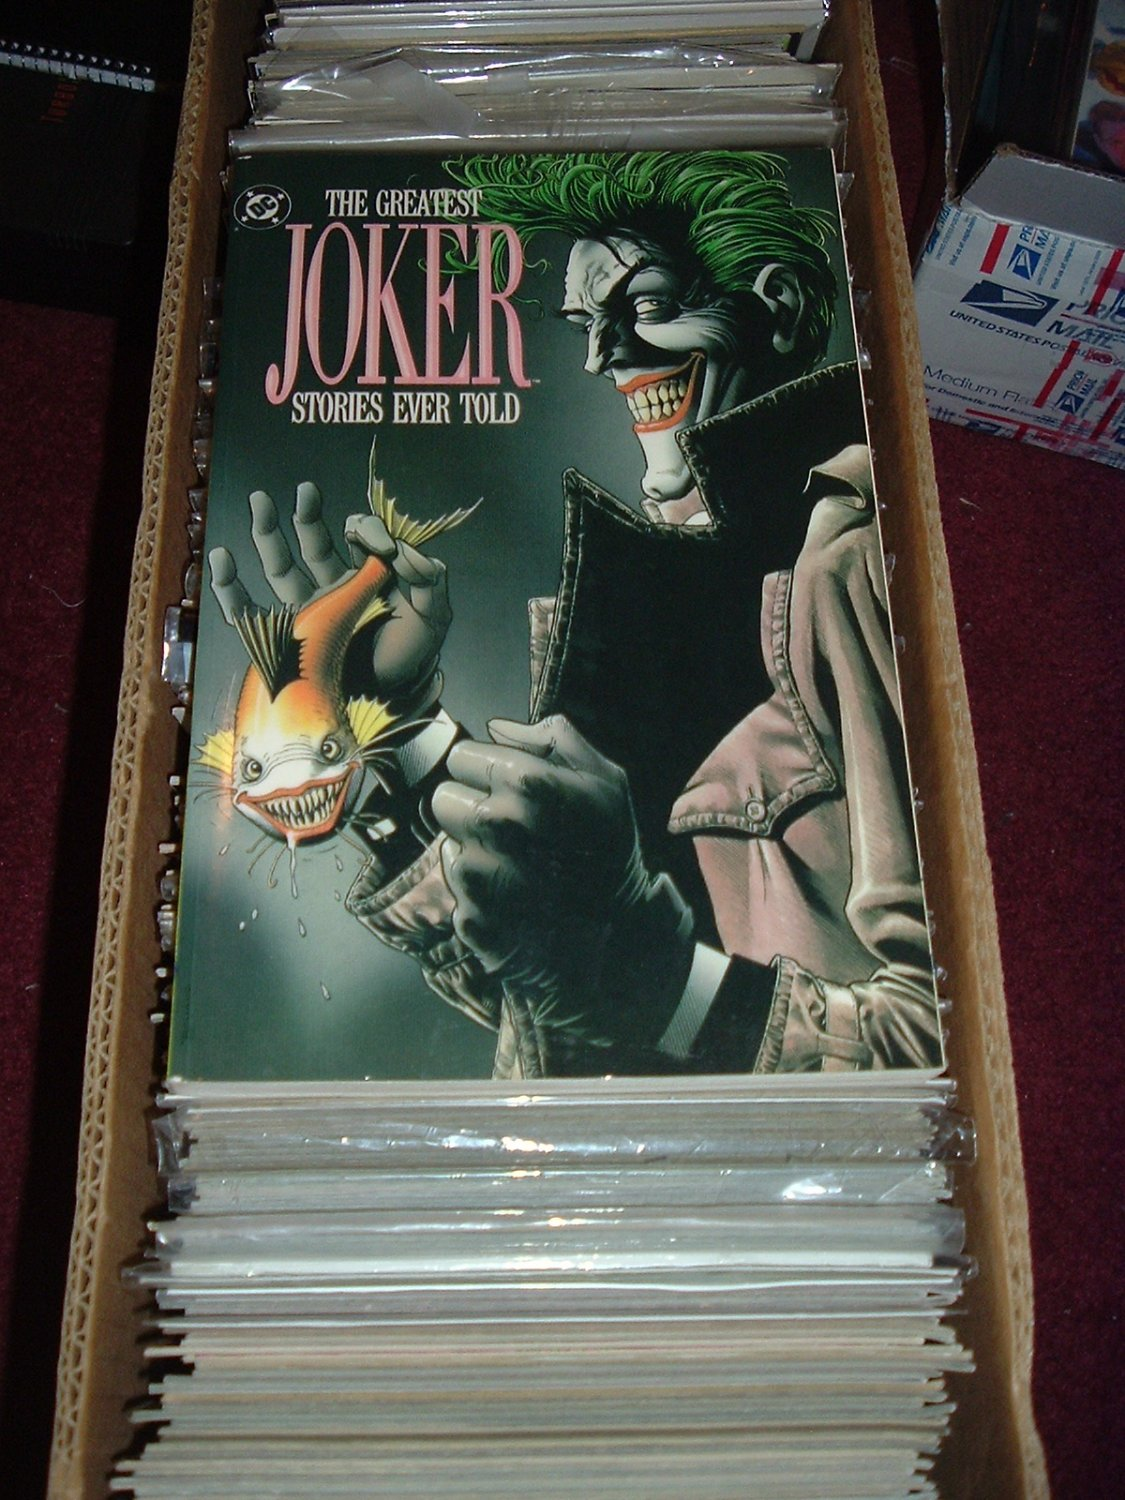 The Greatest Joker Stories Ever Told: JOKER collection (DC Comics TPB 1988) GREAT BOOK